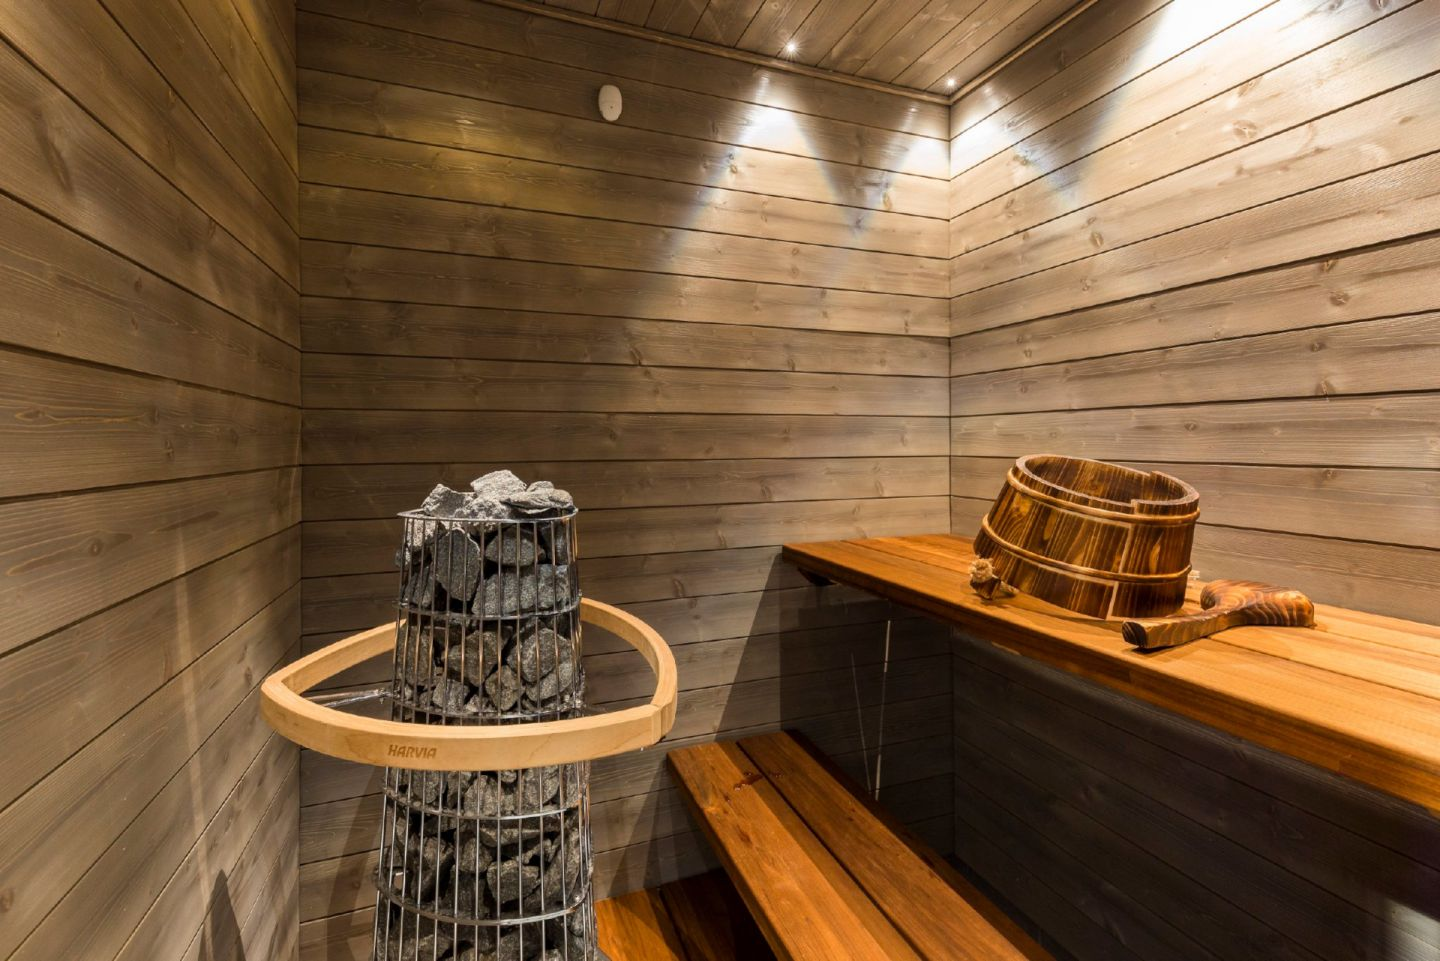 The sauna at Arctic Fox Igloos, a special winter accommodation in Finnish Lapland